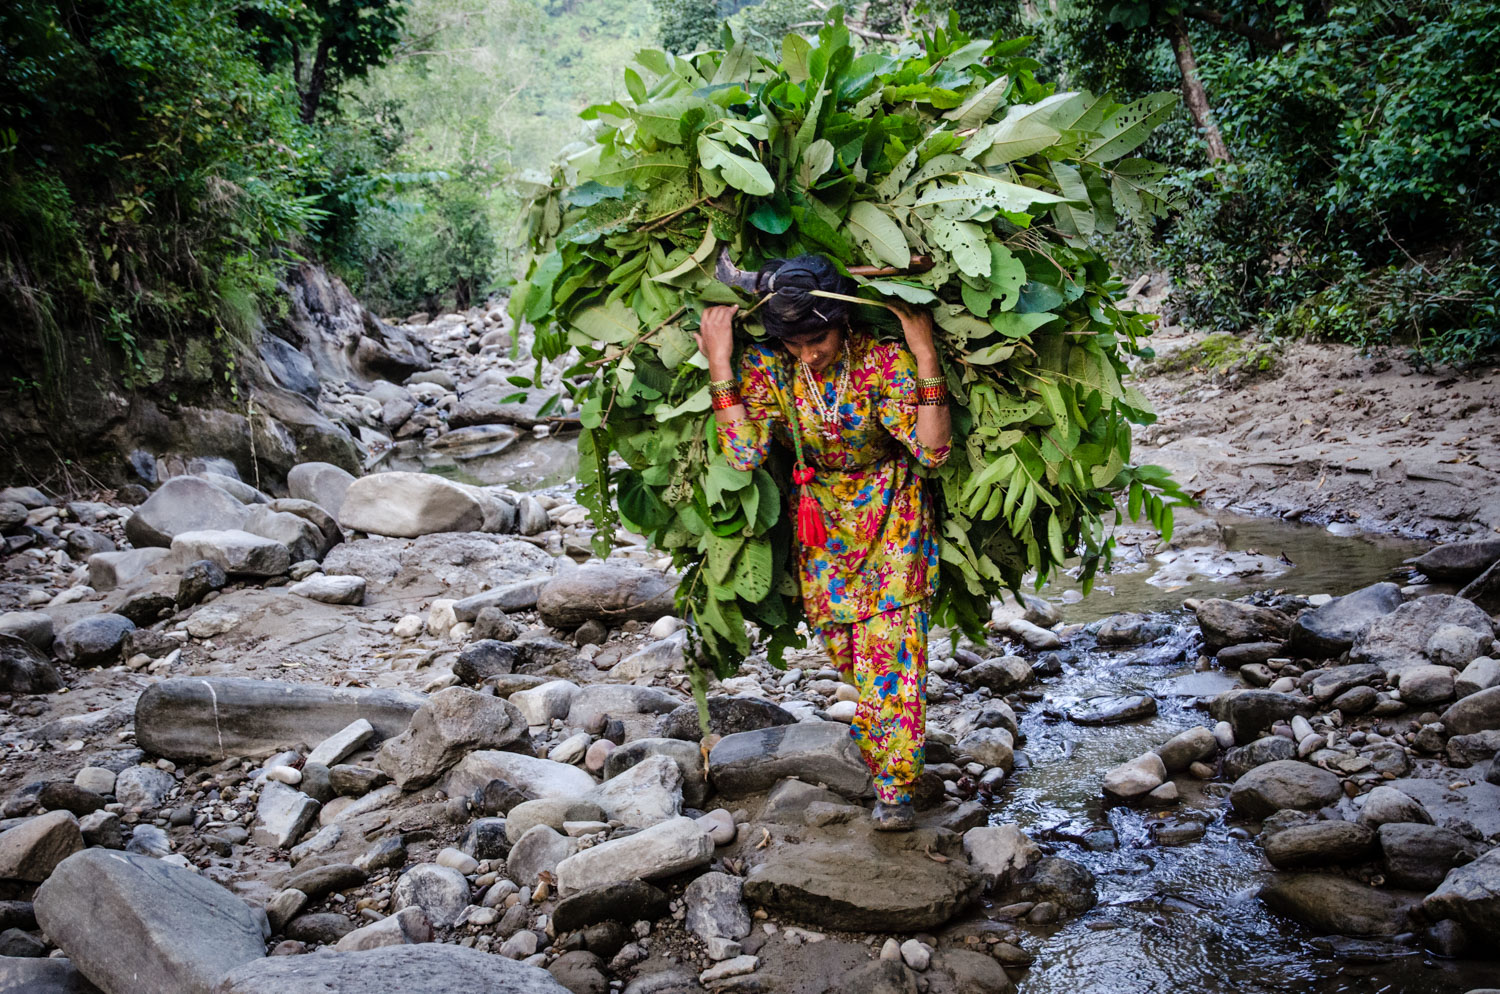 Bashi - in October, 2012, hence the water and greenery - hauling leaves through the Shivaliks for her family's calves.